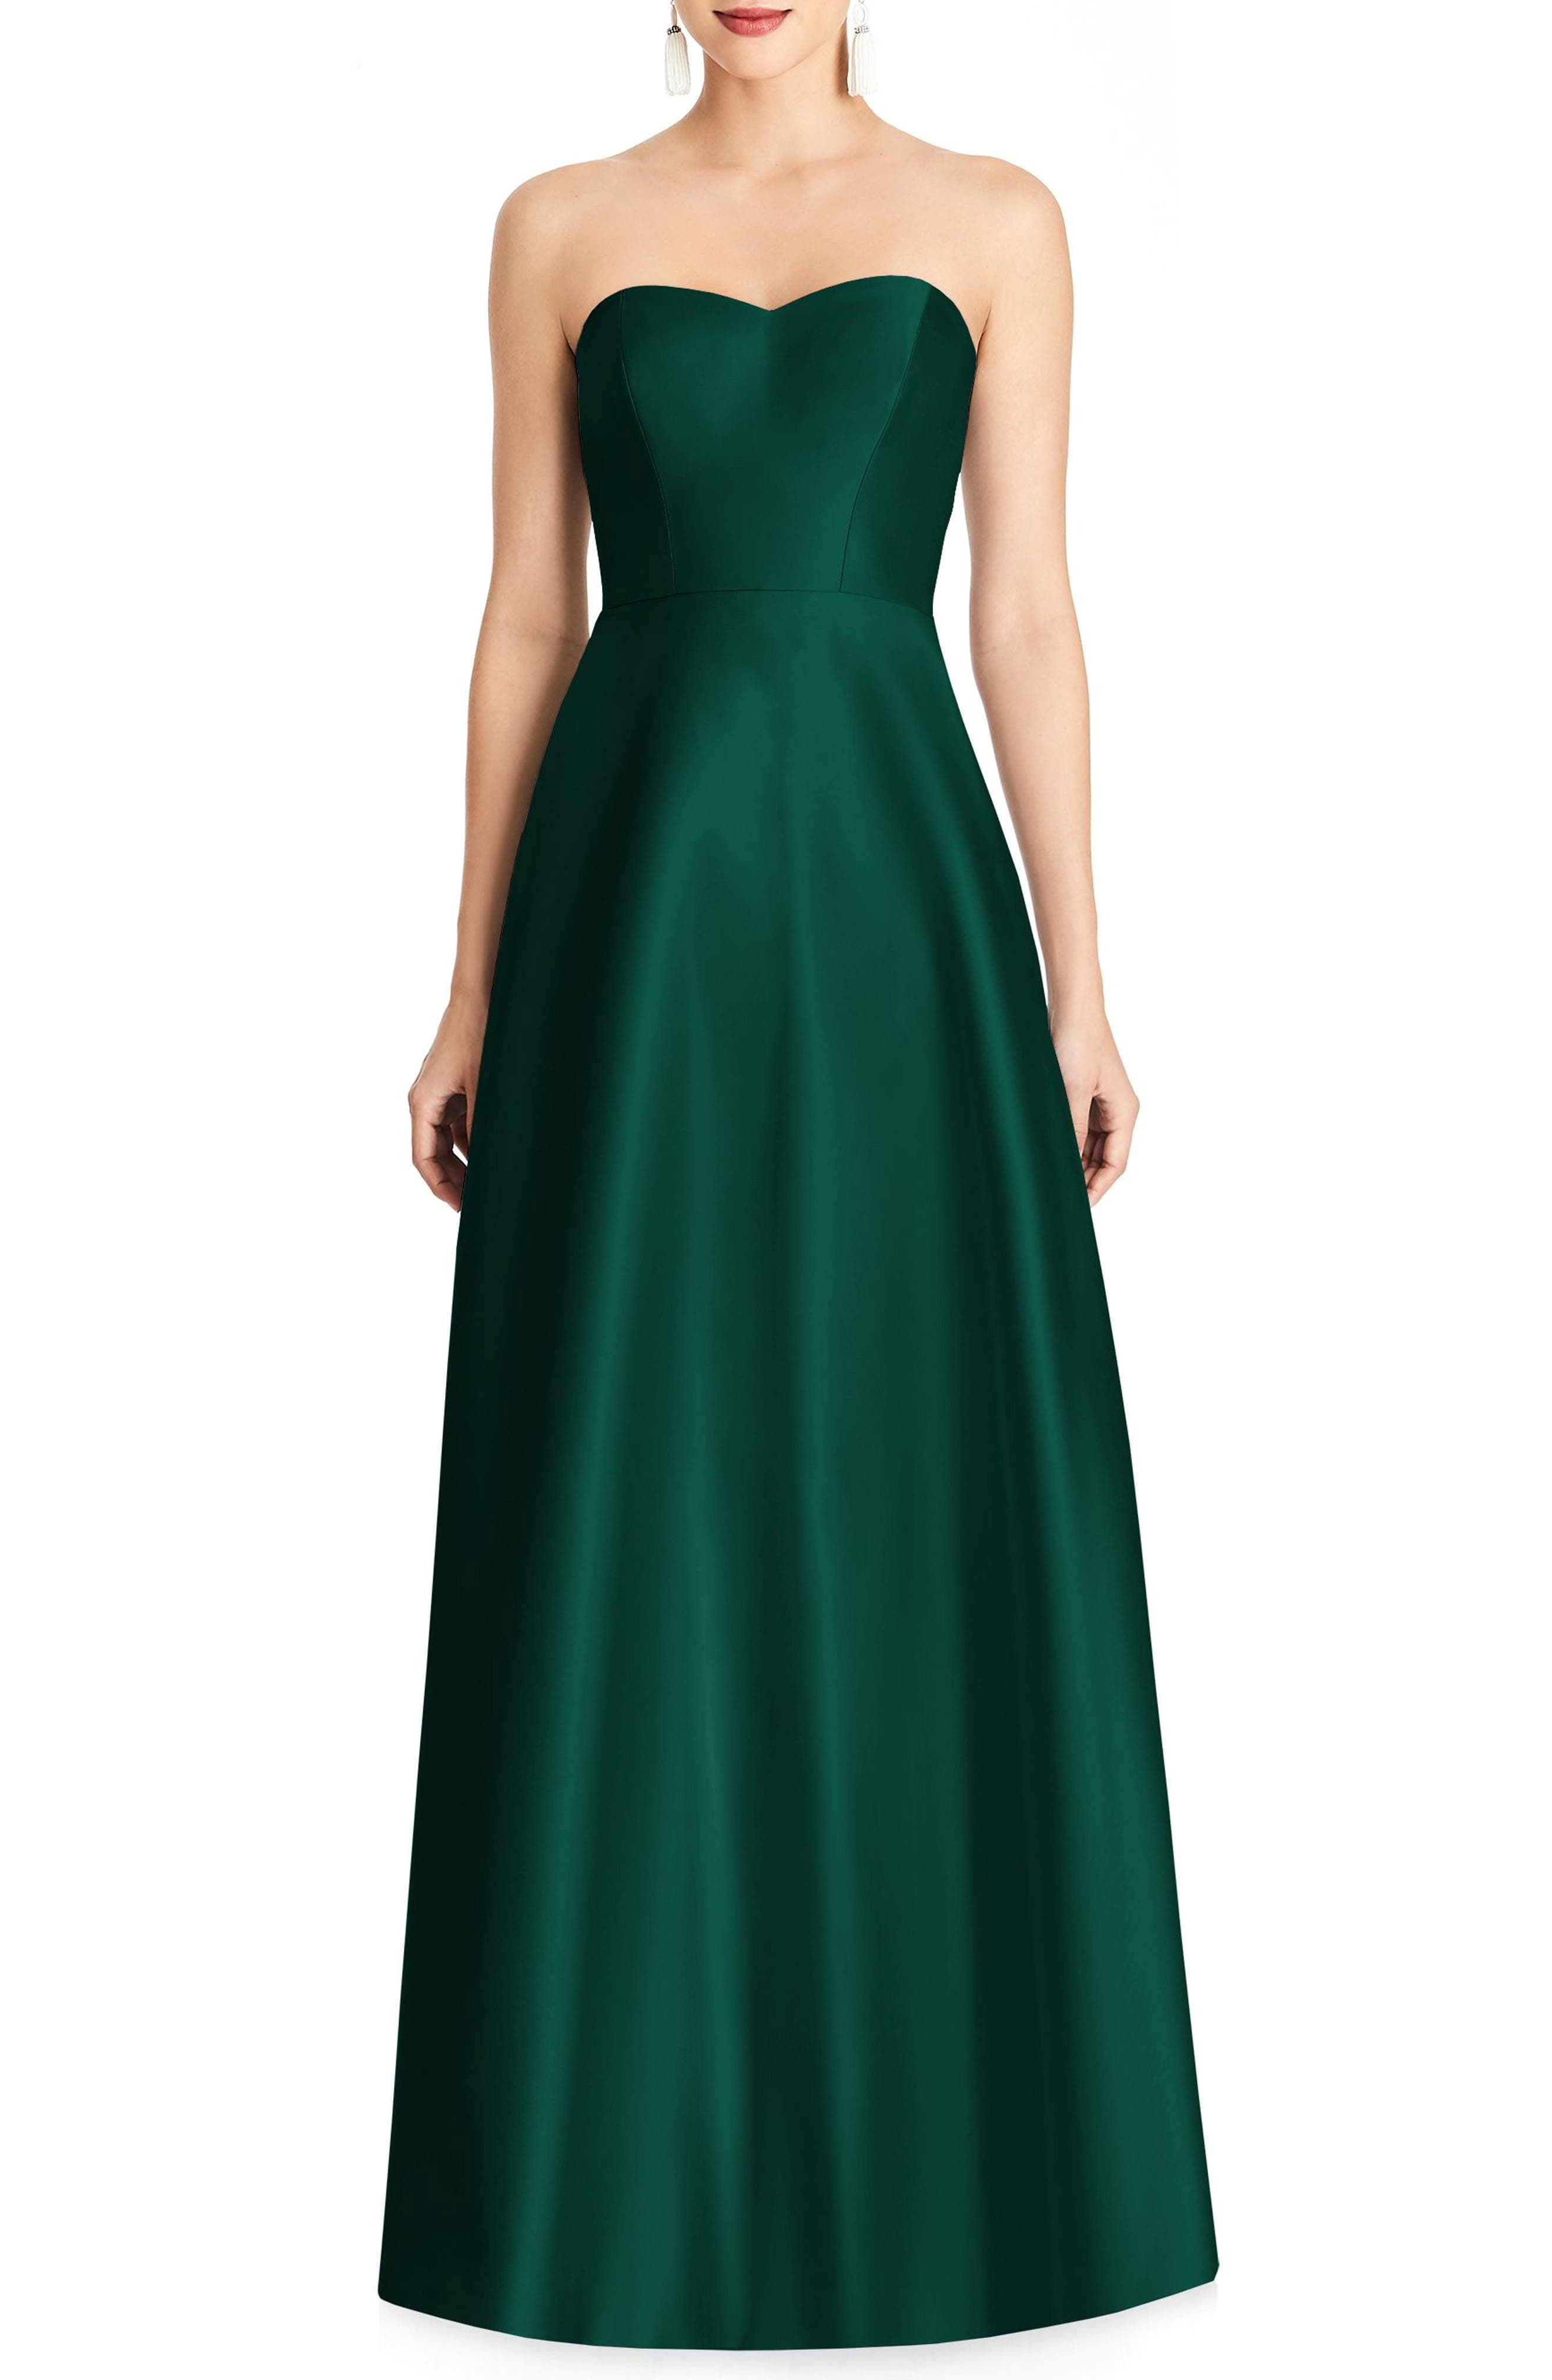 ALFRED SUNG, Strapless Sateen Gown, Main thumbnail 1, color, HUNTER